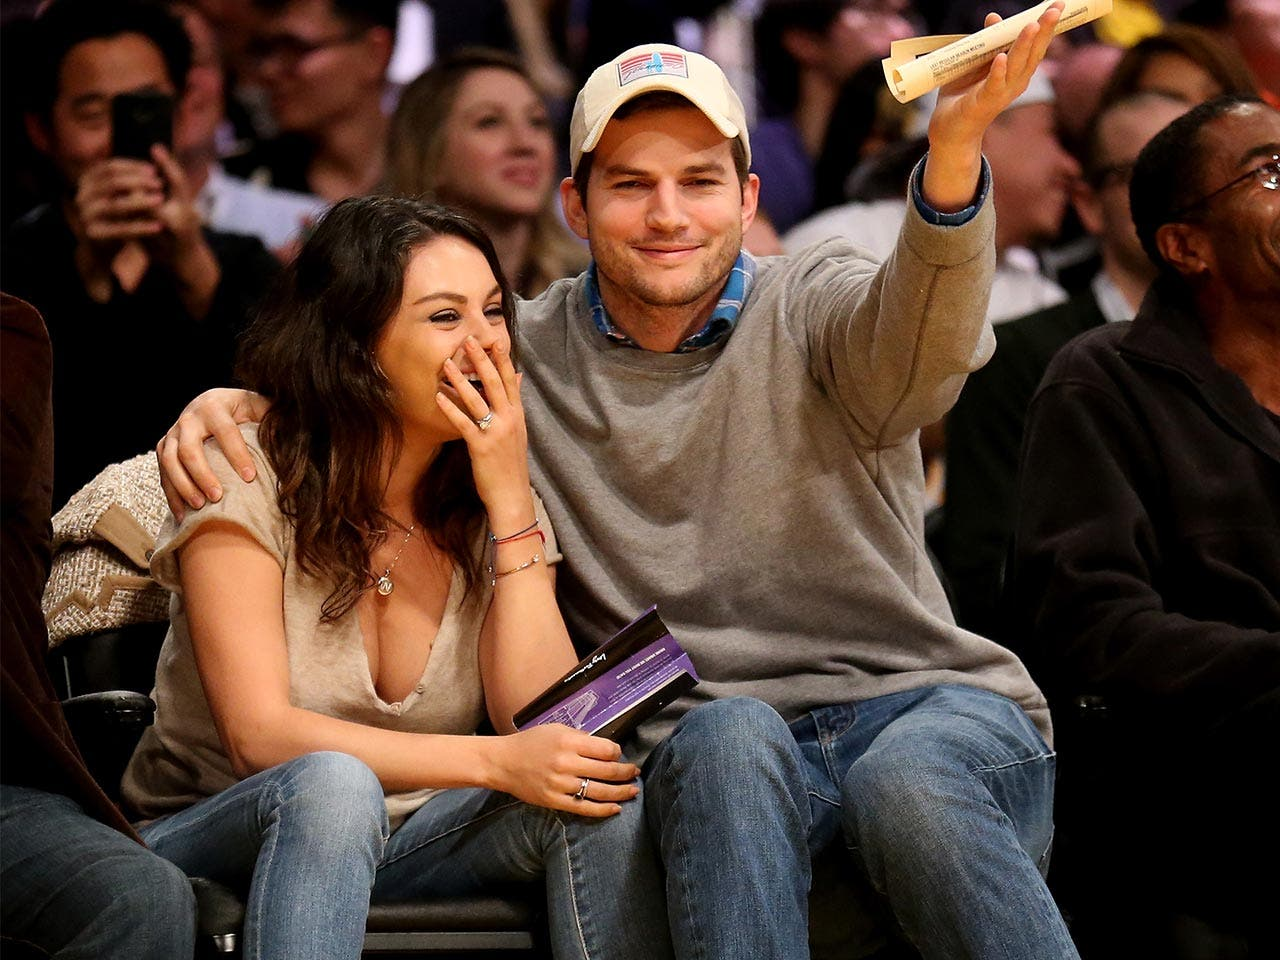 Hollywood power couple | Ashton Kutcher and Mila Kunis | Stephen Dunn/Getty Images